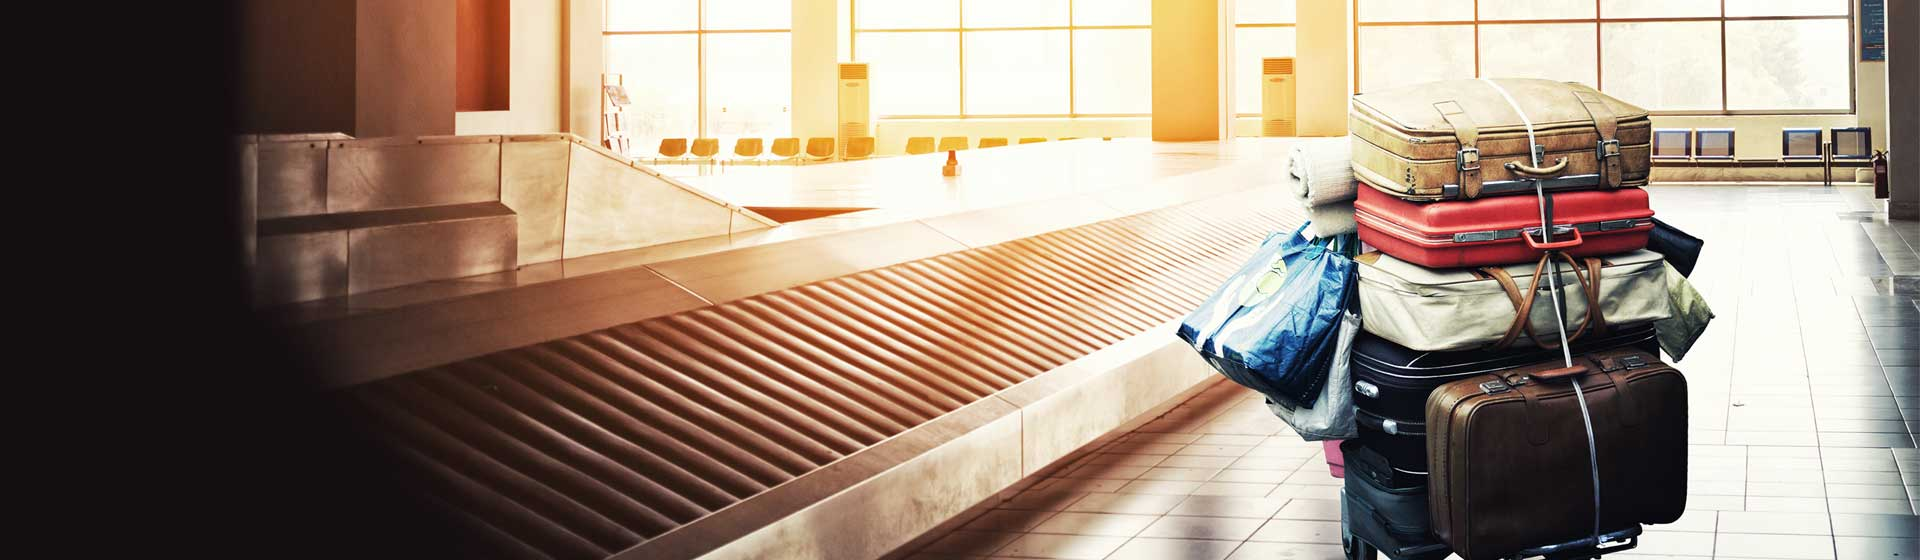 baggage fees, checked bag fees, fees for overweight bags, carry-on bags policy